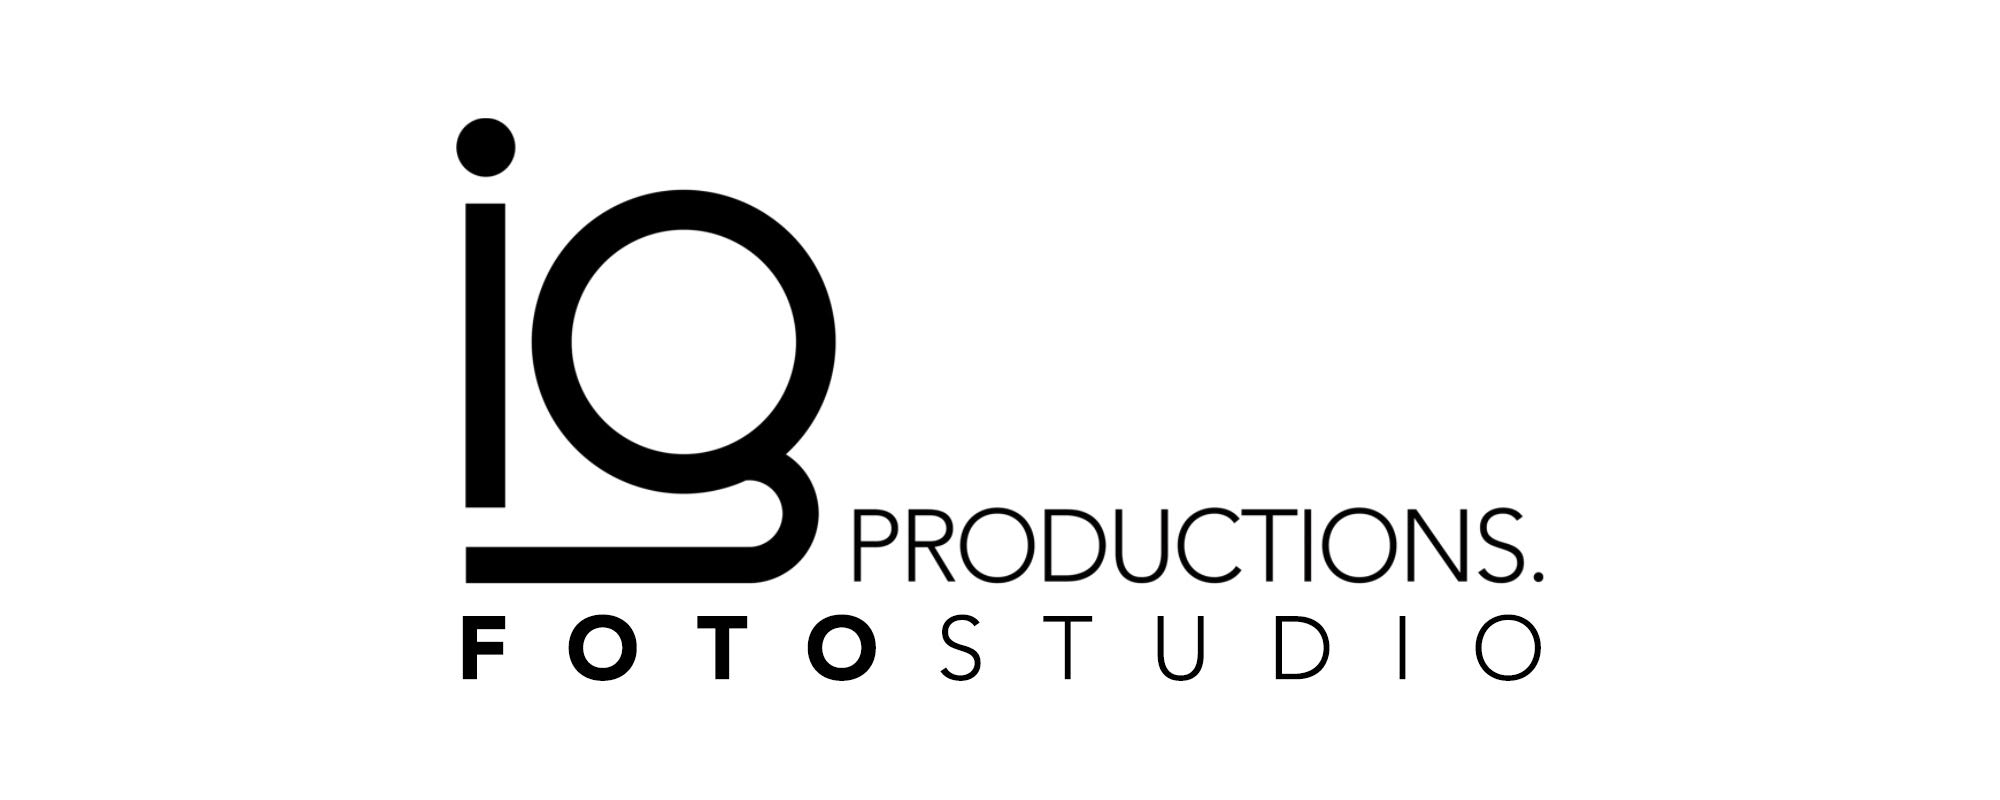 IG Productions